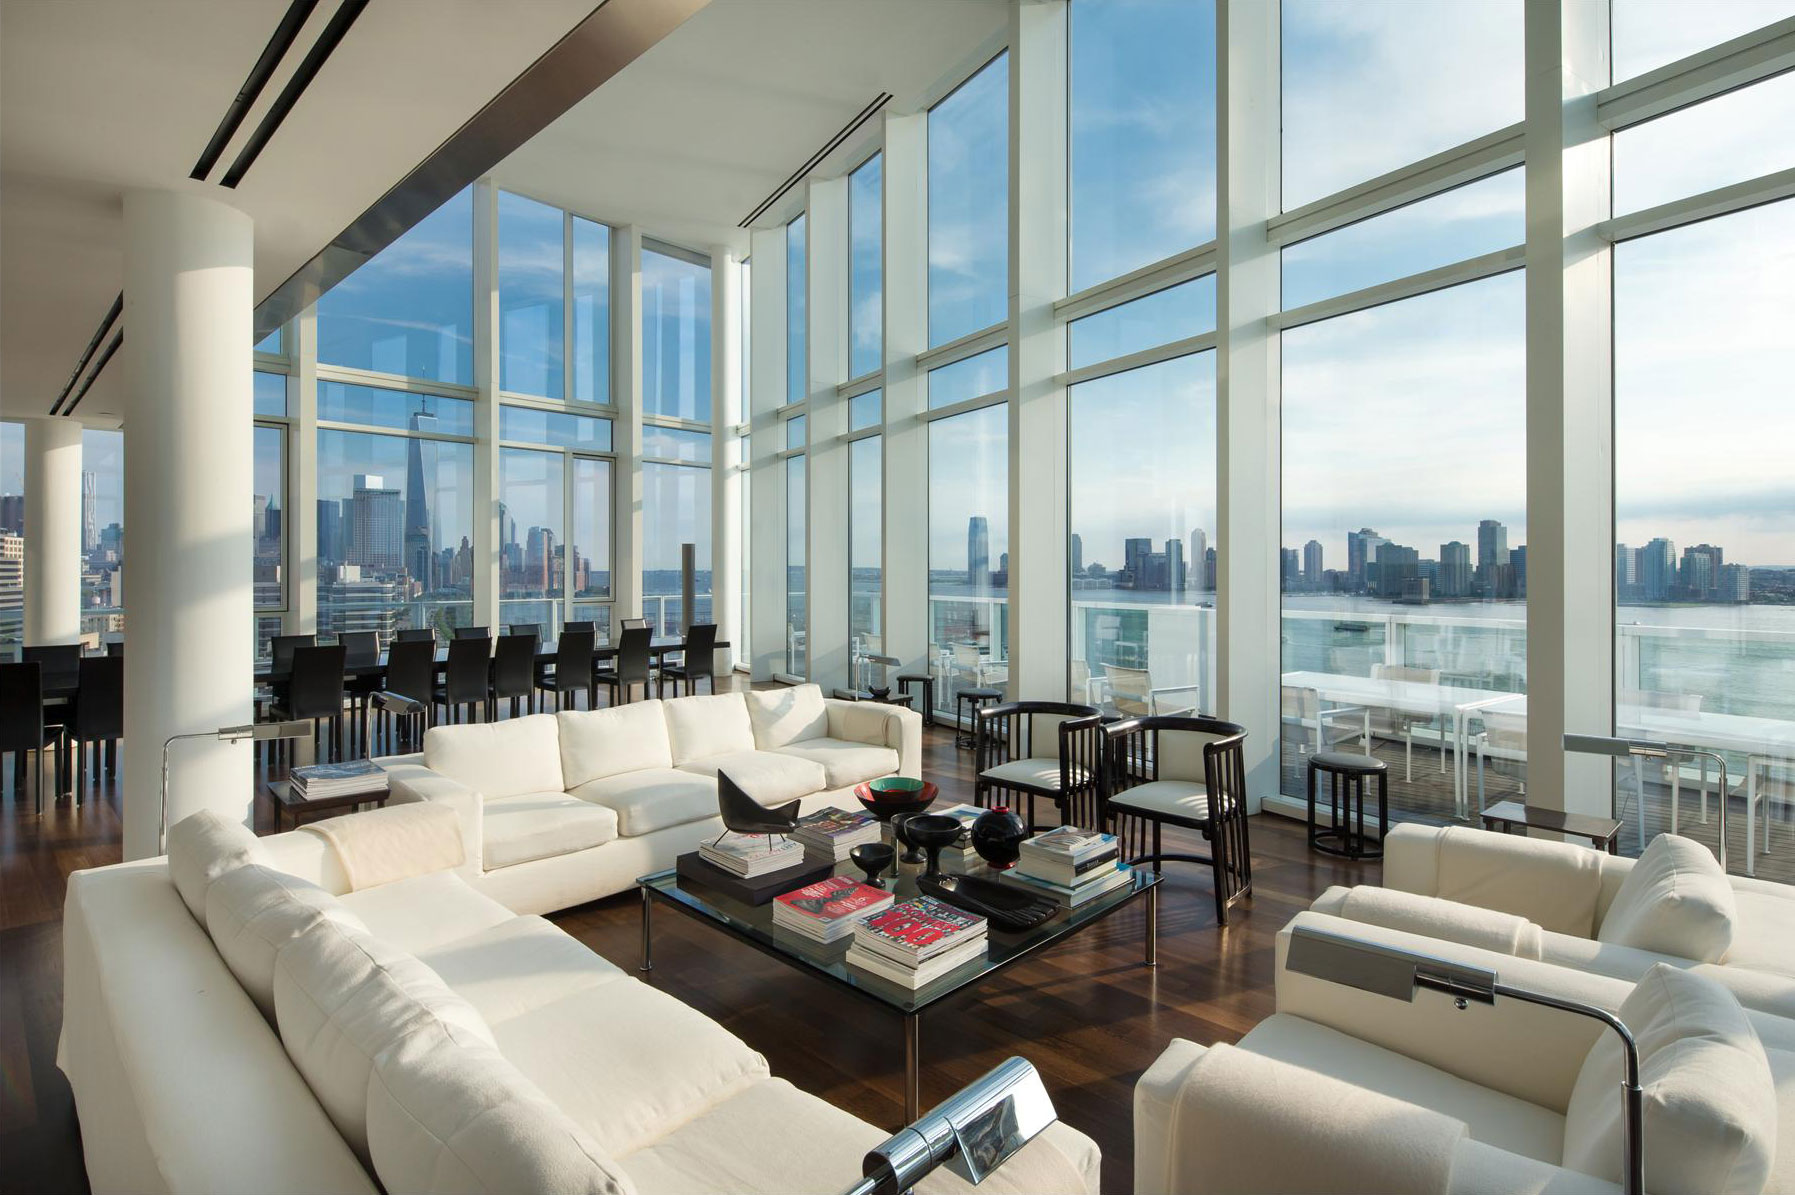 Luxurious apartment overlooking the hudson river in manhattan for Manhattan house apartments for sale